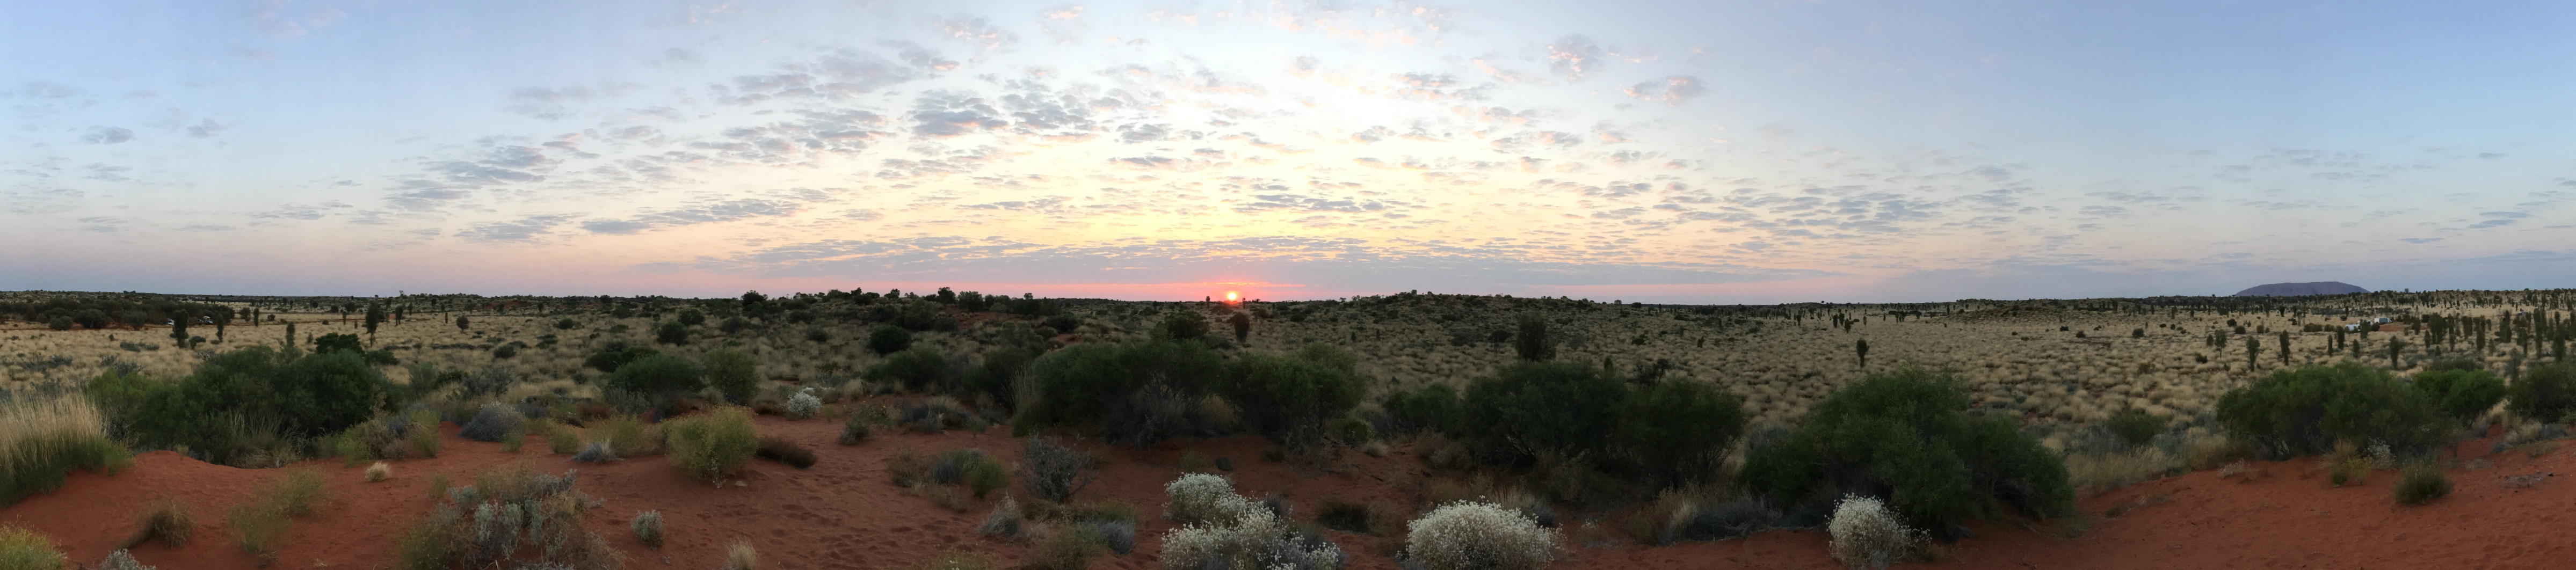 After waking up to see the sunrise, we set off early to go and cycle around Uluru.